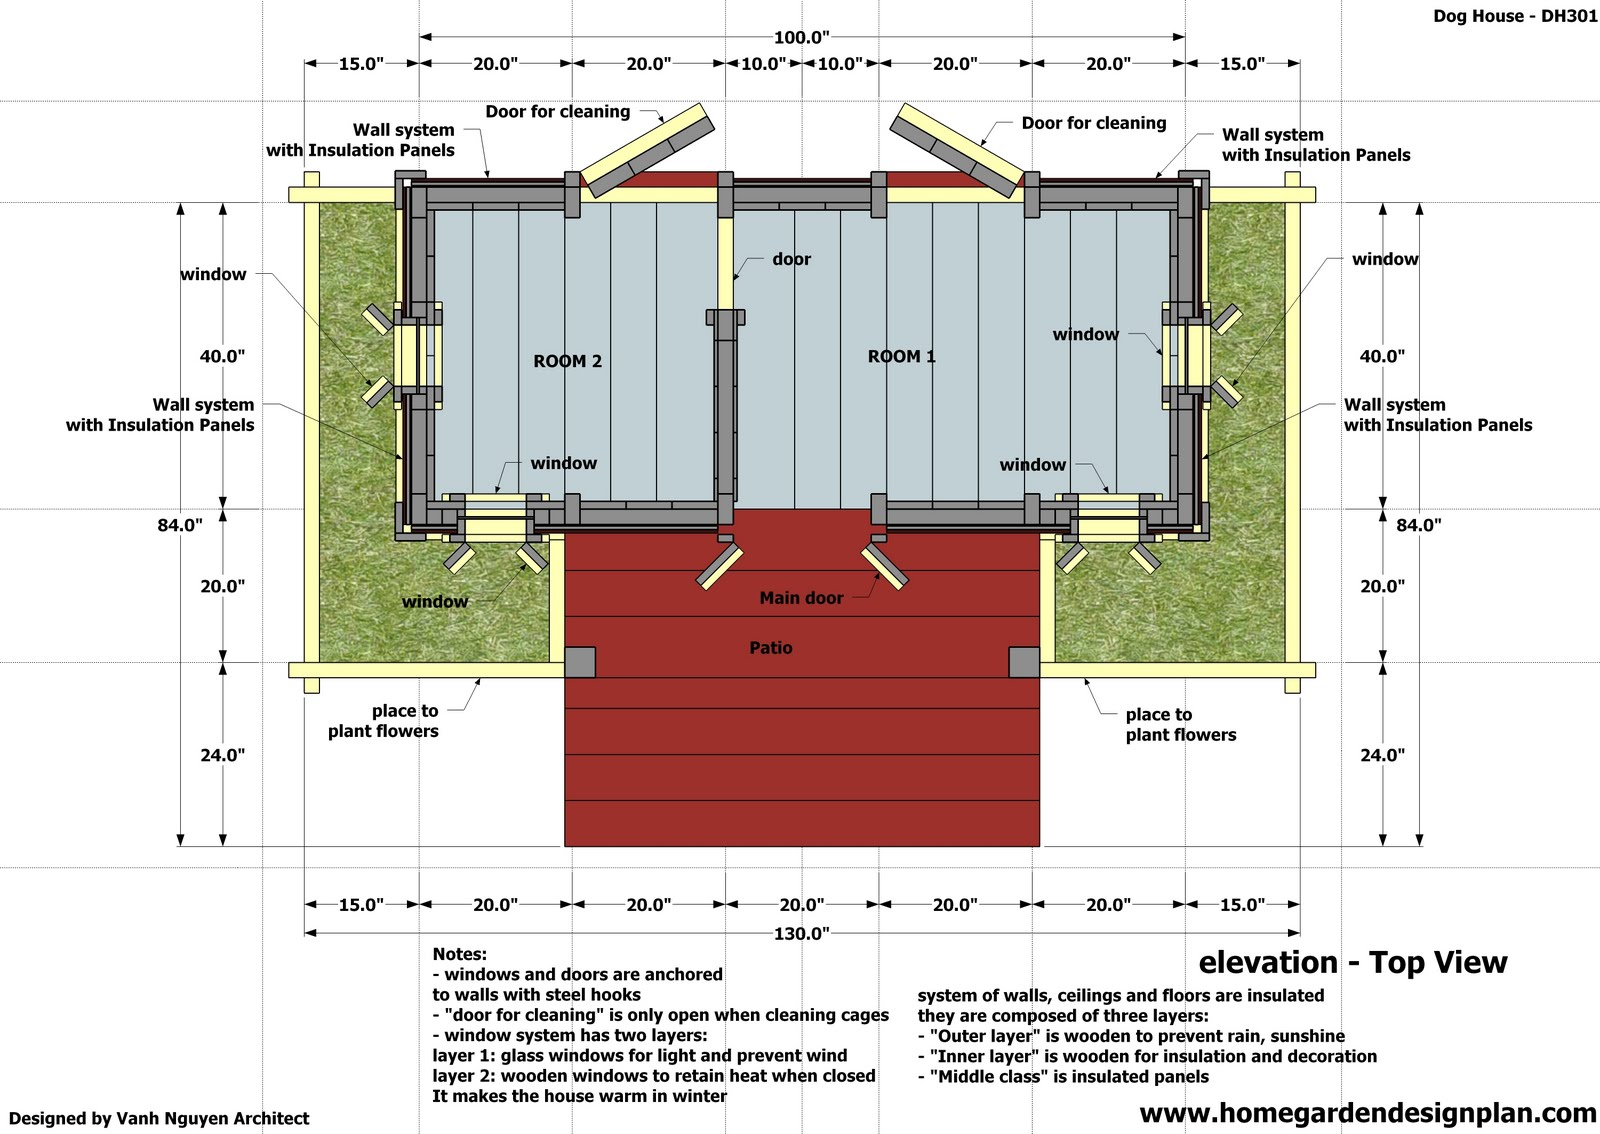 Insulated dog house plans for large dogs free - photo#10